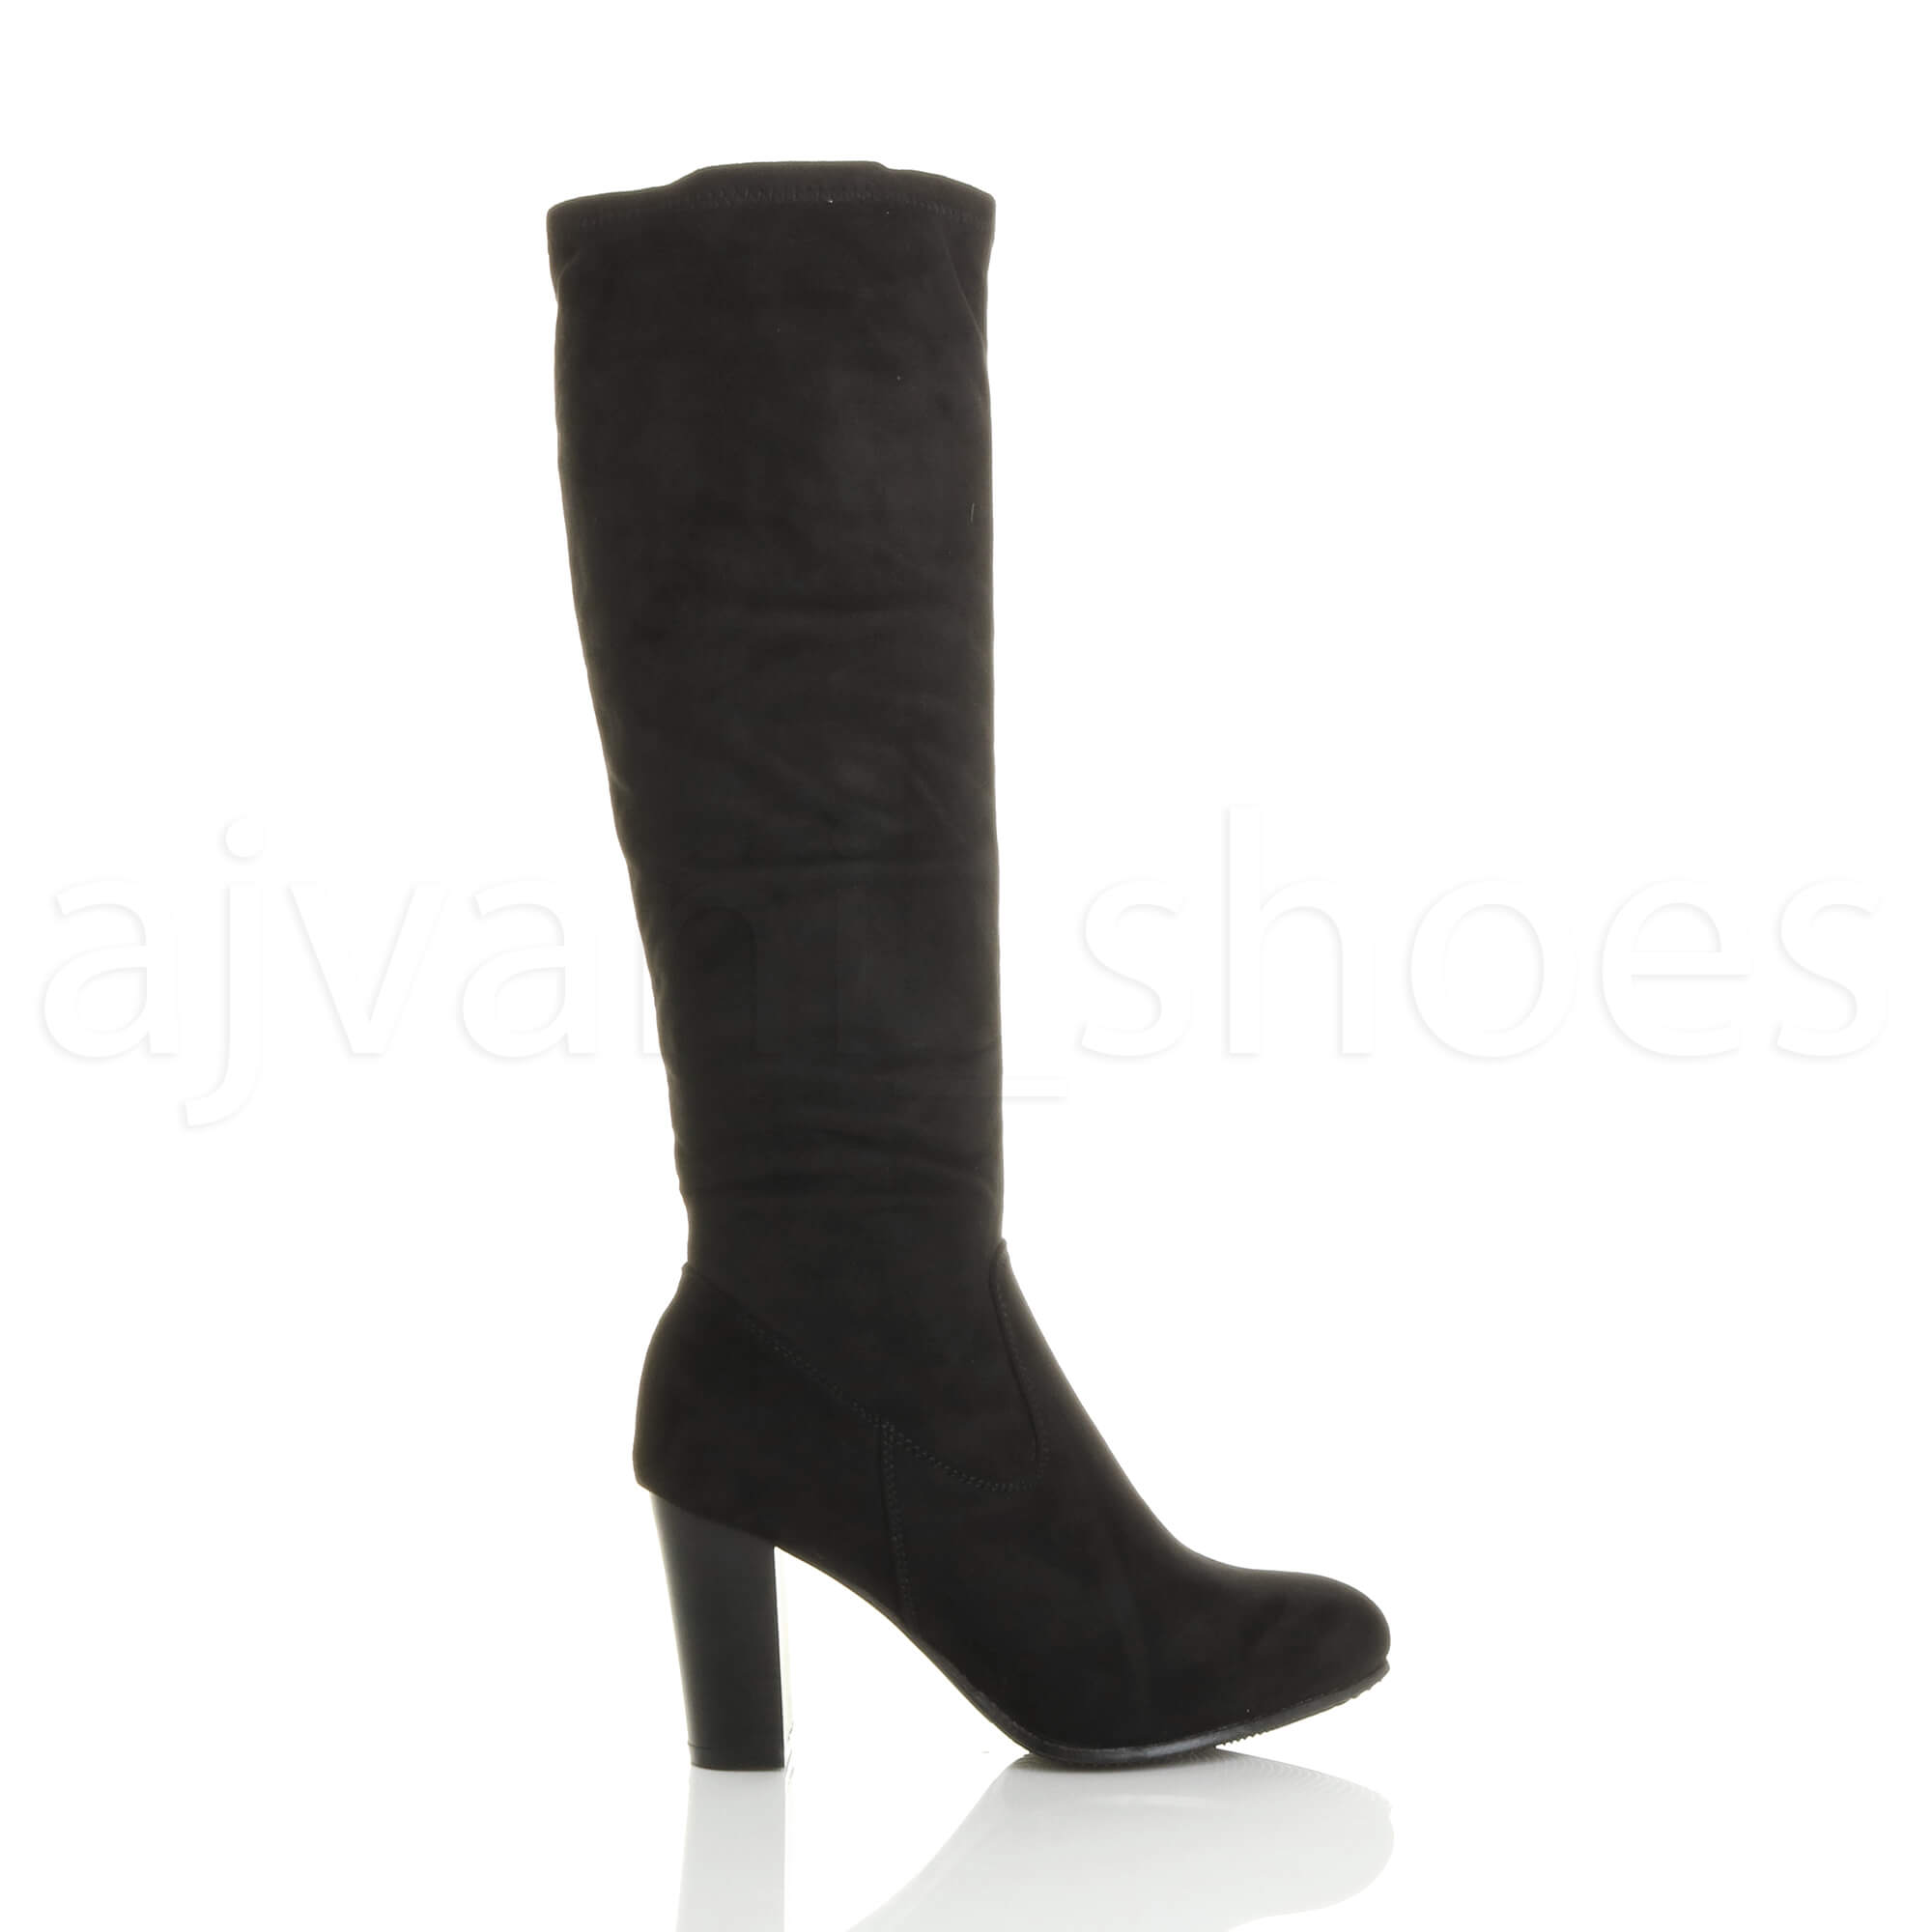 WOMENS-LADIES-HIGH-BLOCK-HEEL-STRETCH-ZIP-SOCK-SMART-RIDING-CALF-KNEE-BOOTS-SIZE